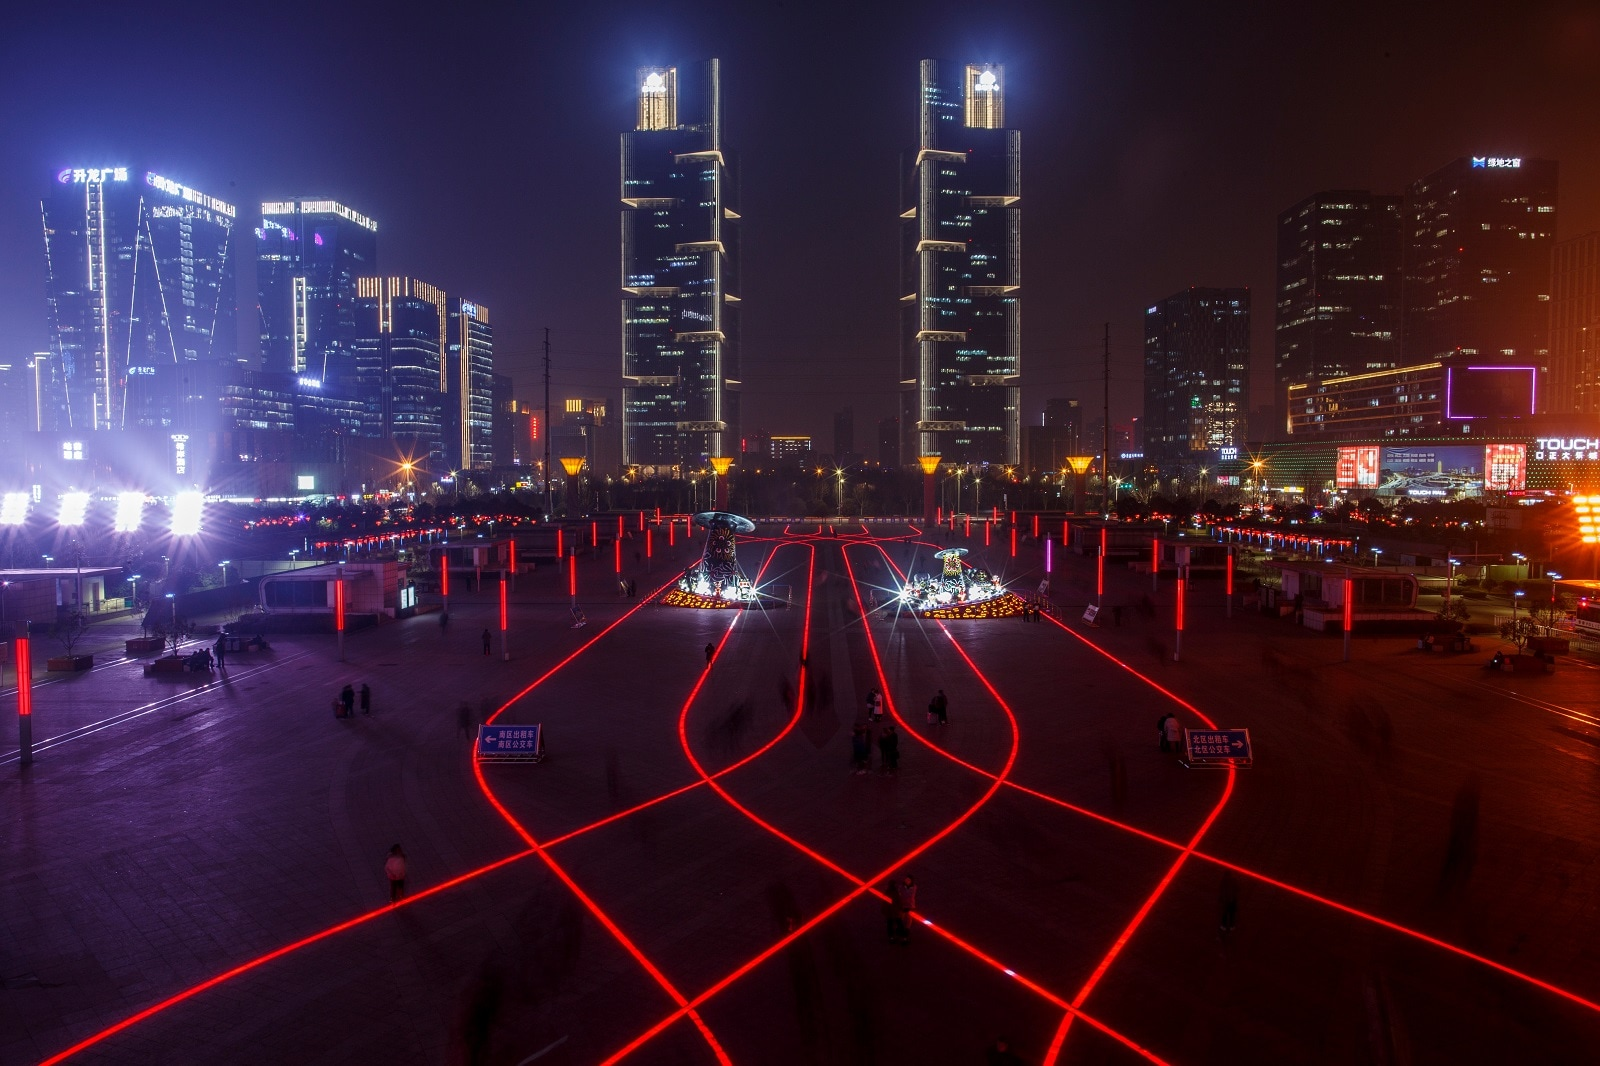 LED lights in the pavement illuminate the square in front of a high-speed railway station in the new business district of Zhengzhou, Henan province China, February 22, 2019. REUTERS/Thomas Peter